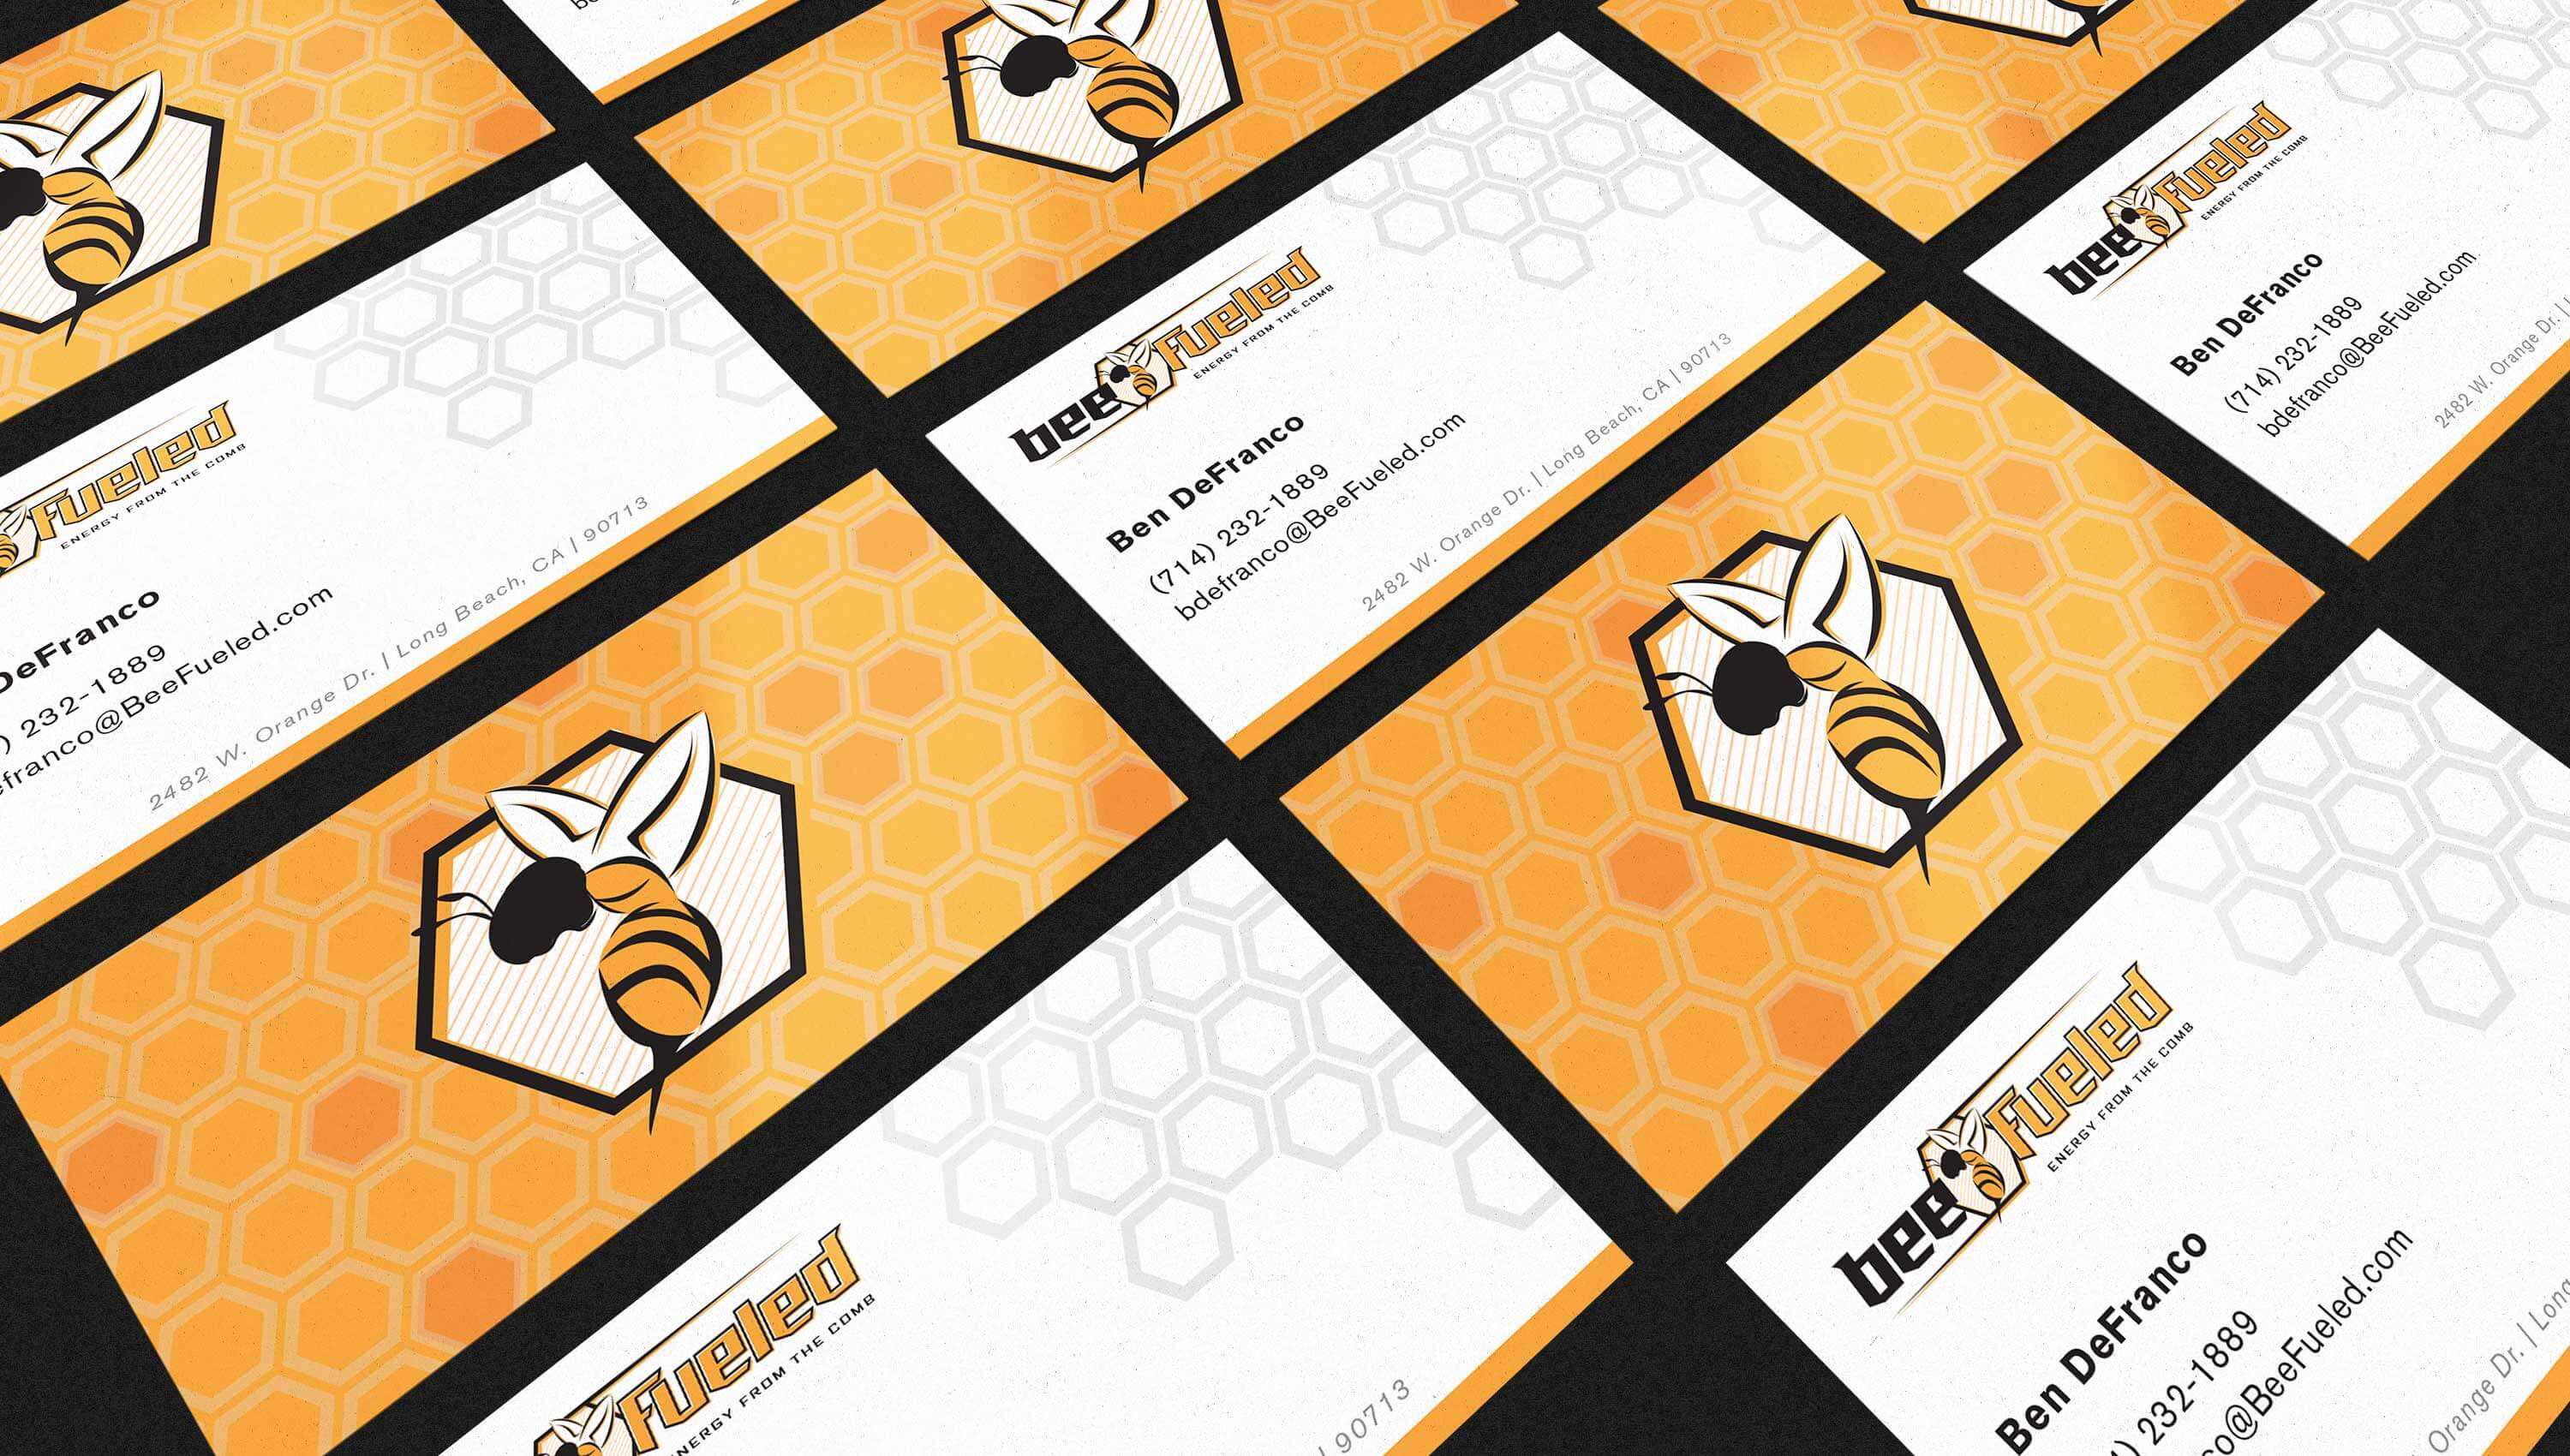 Bee Fueled business cards.